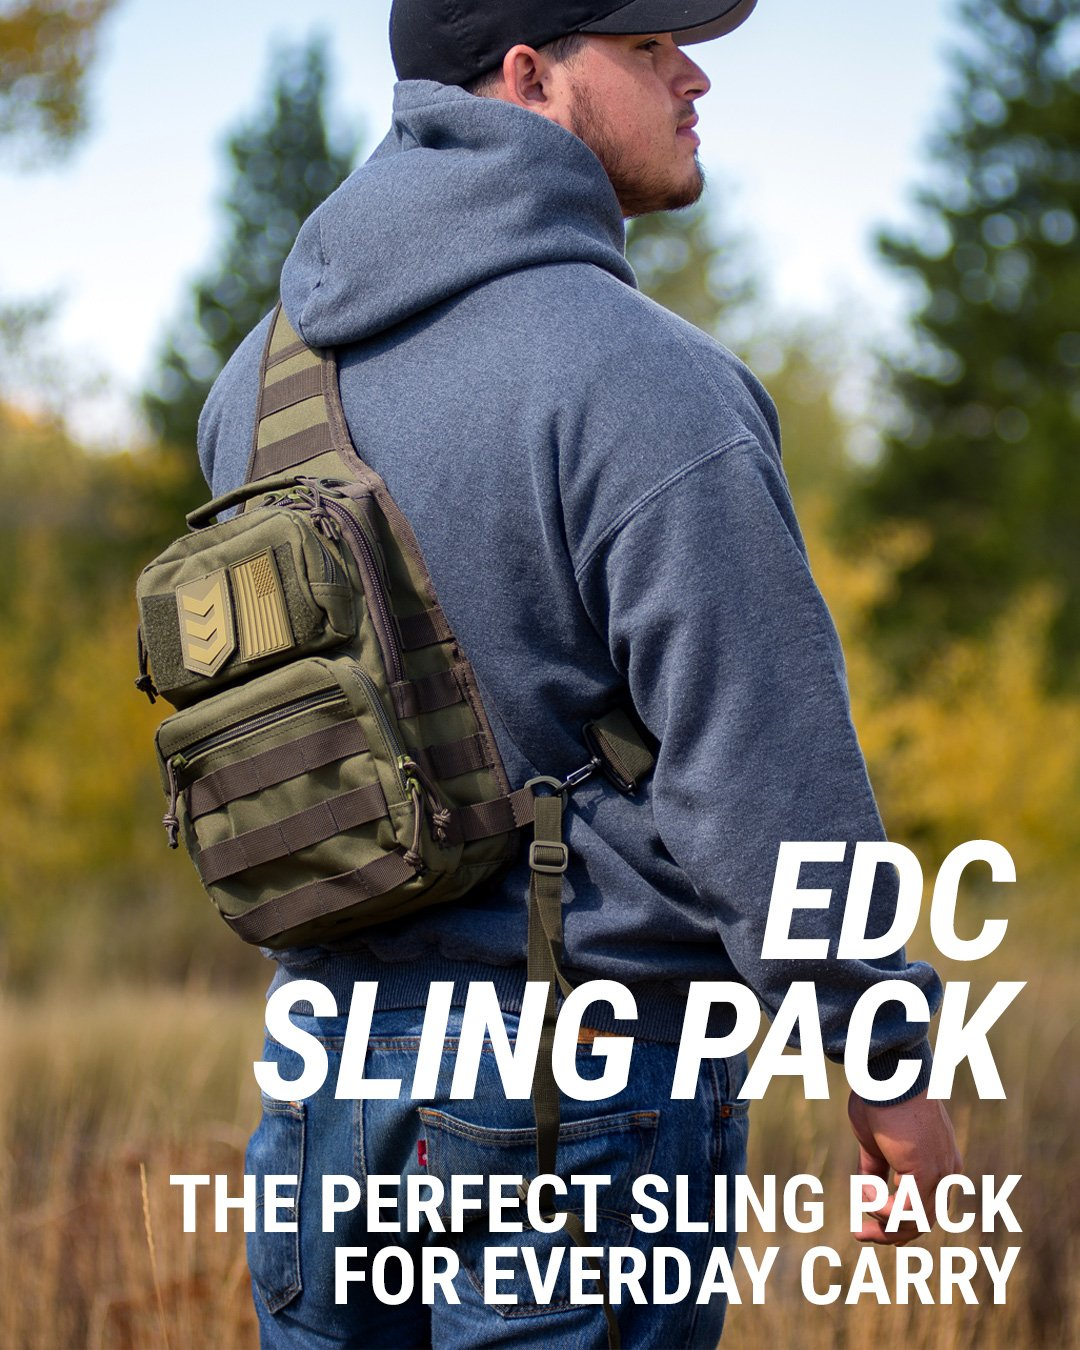 3v gear posse edc sling pack for everyday carry